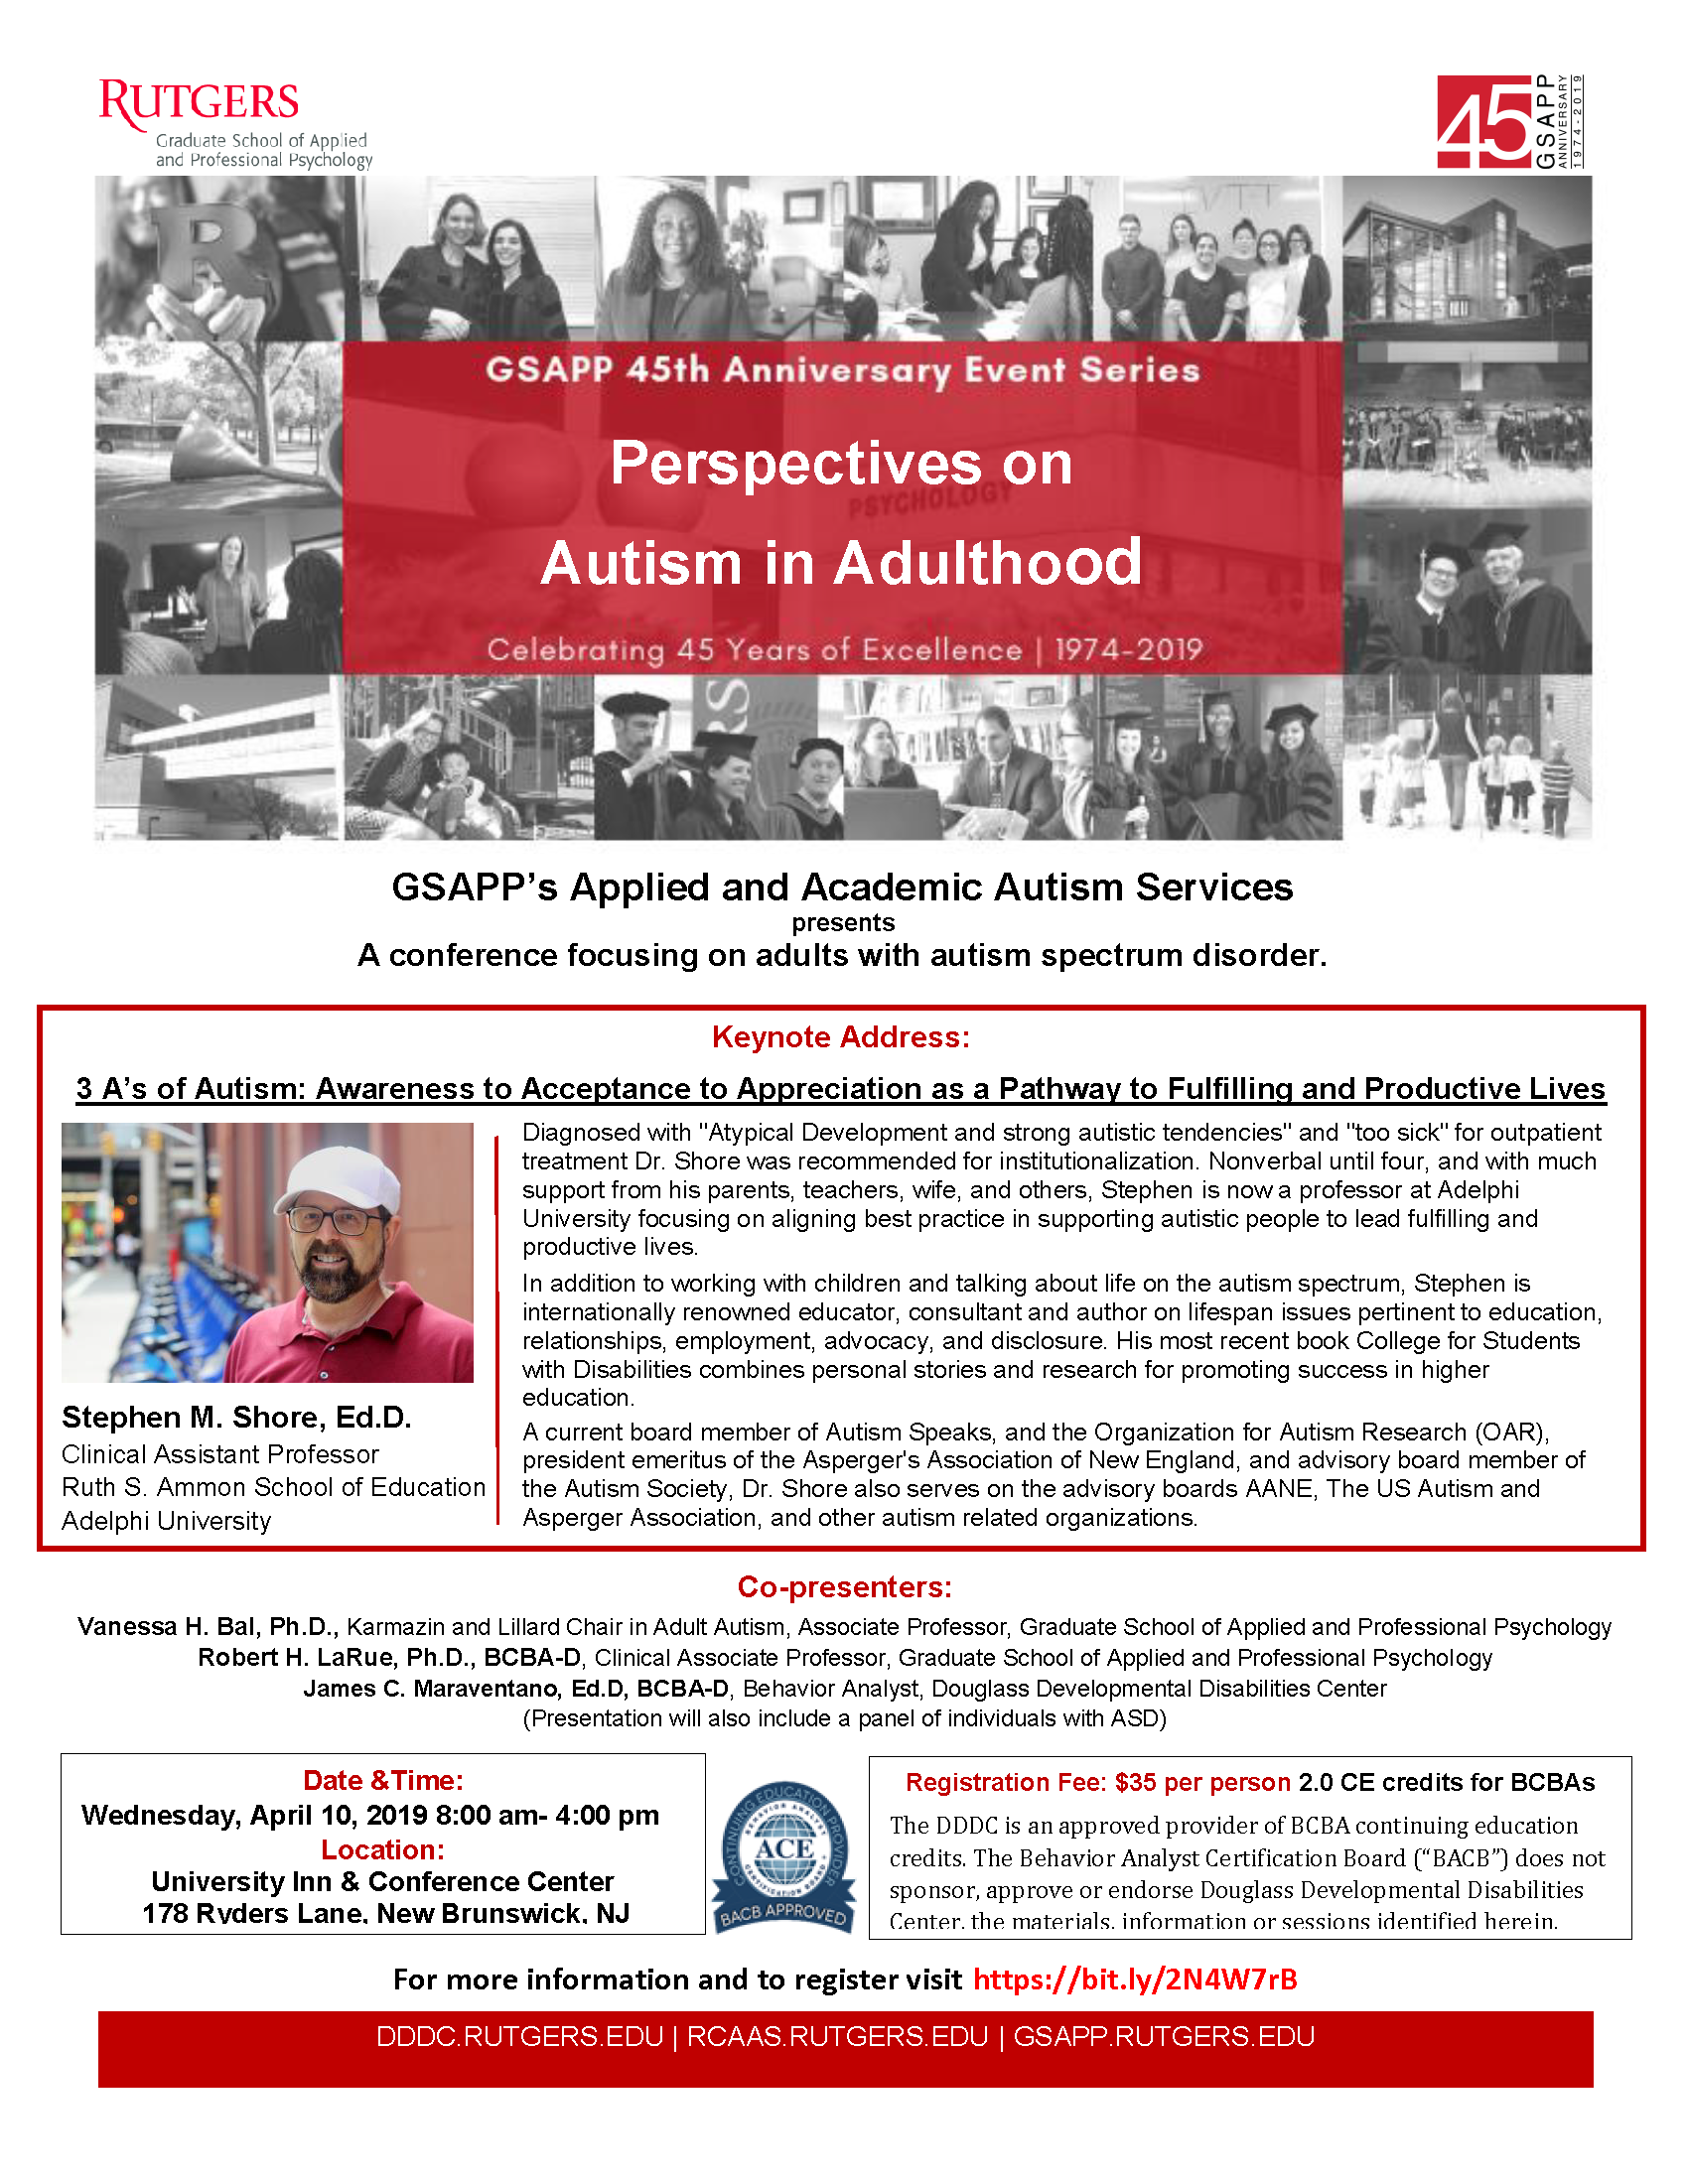 Aane Conference At Lasell College >> Perspectives On Autism In Adulthood Gsapp